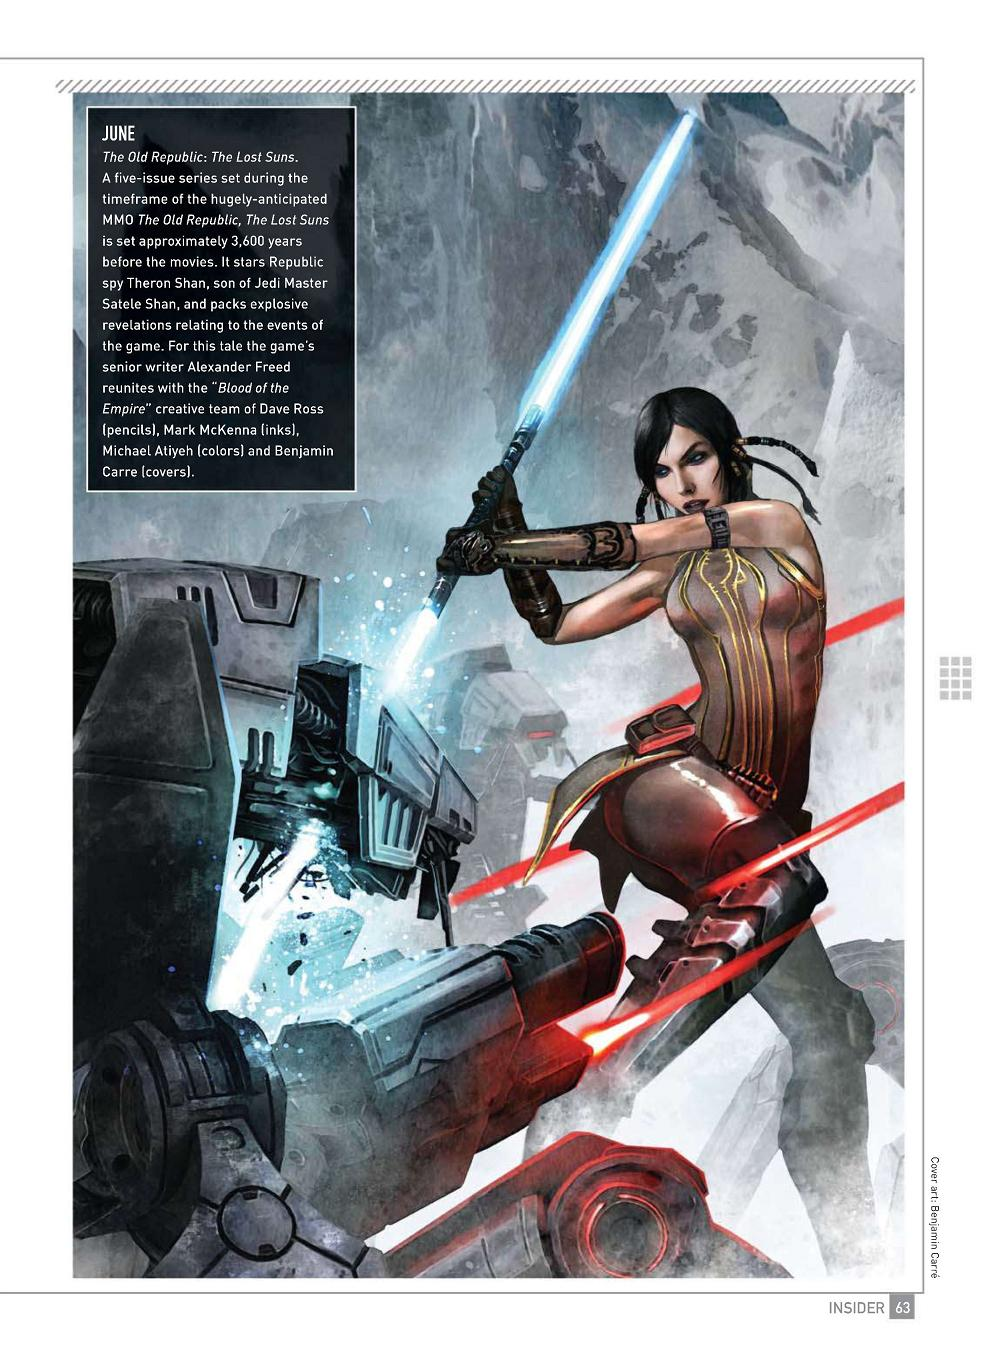 Star wars the old republic hot girl  cartoon pic